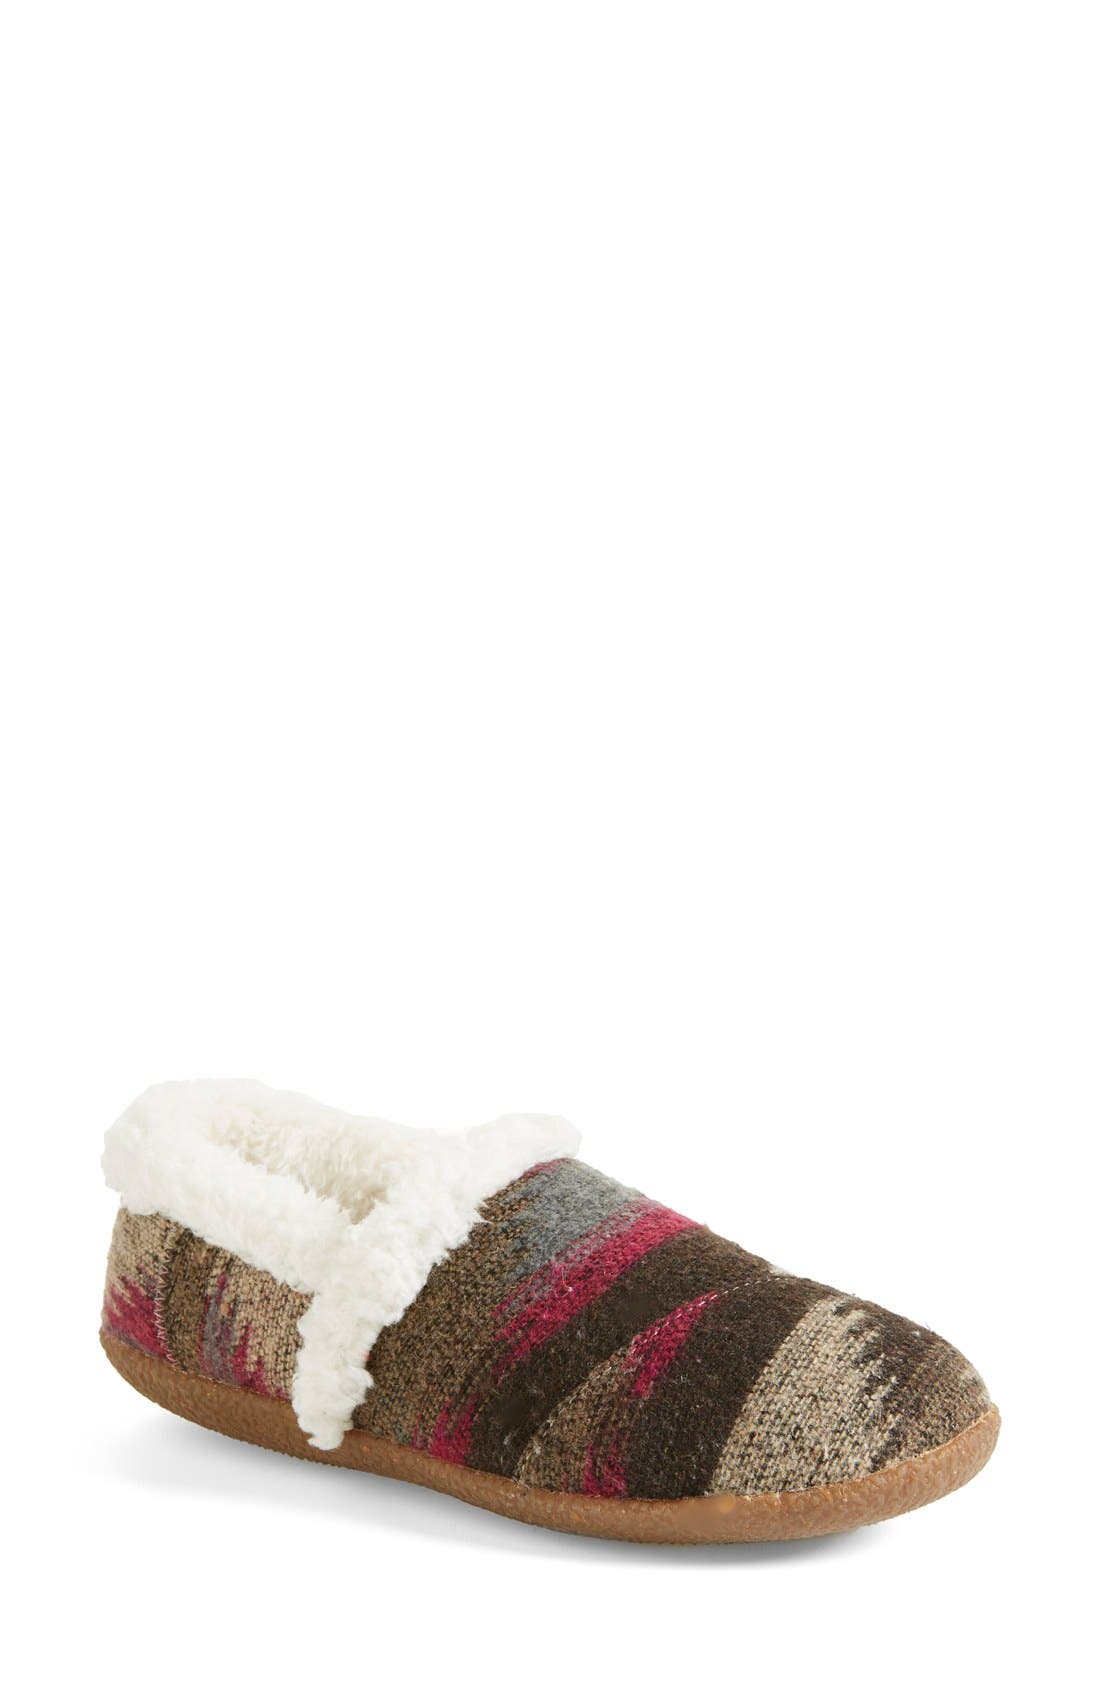 TOMS 'Classic - Wool' Slippers, Main, color, 050